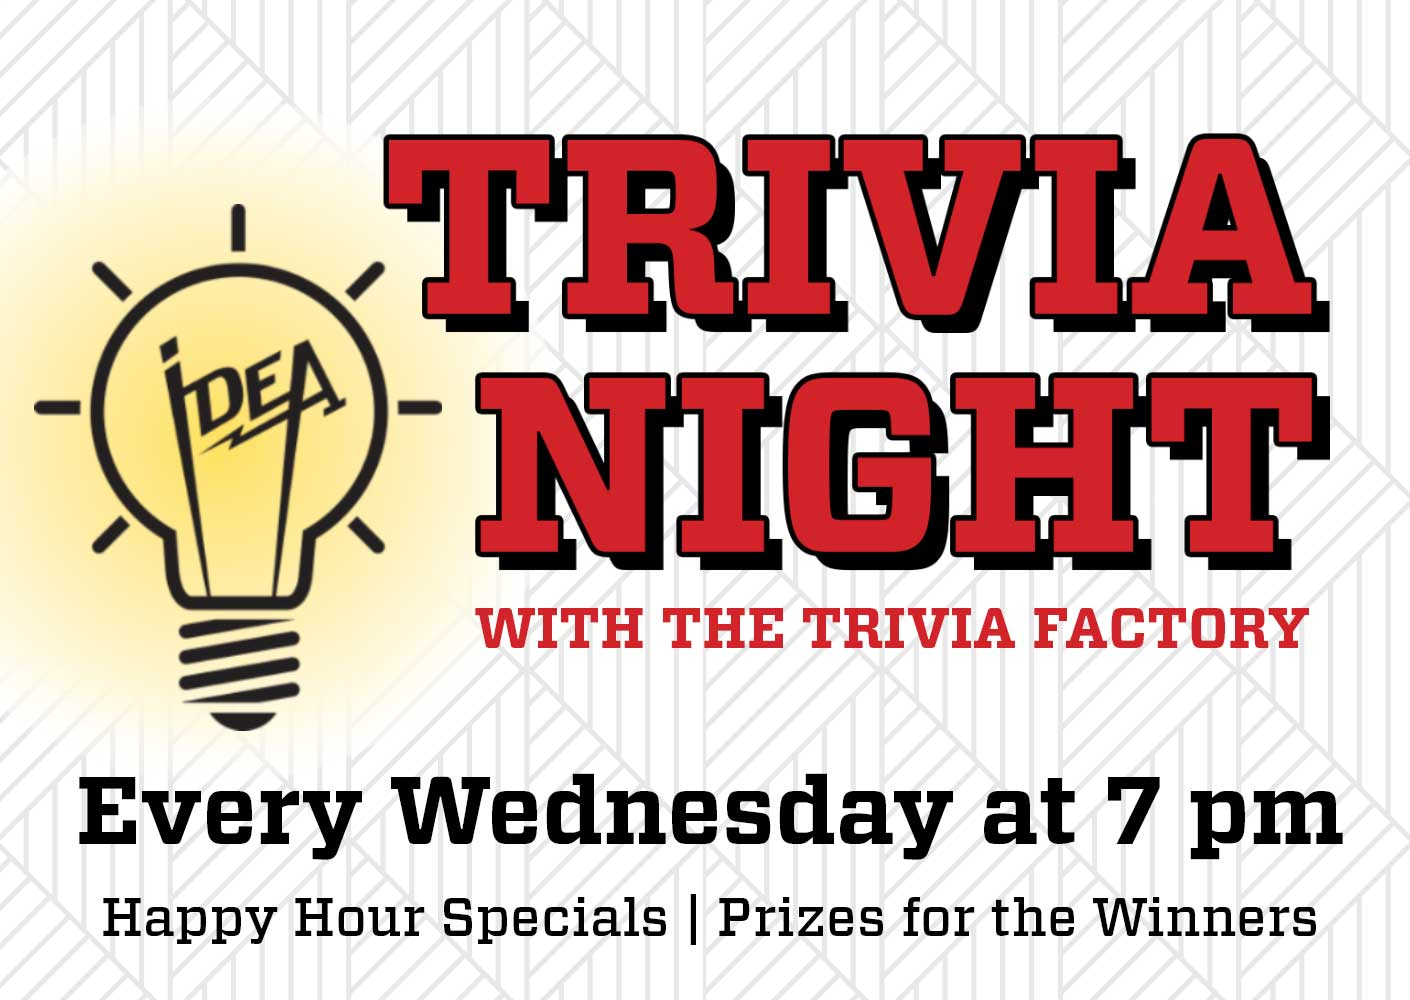 Trivia Night - Every Wednesday | 7pmLots of fun with Happy Hour Specials on Food & Drinks ALL DAY every Wednesday. Prizes for the winning know-it-alls!